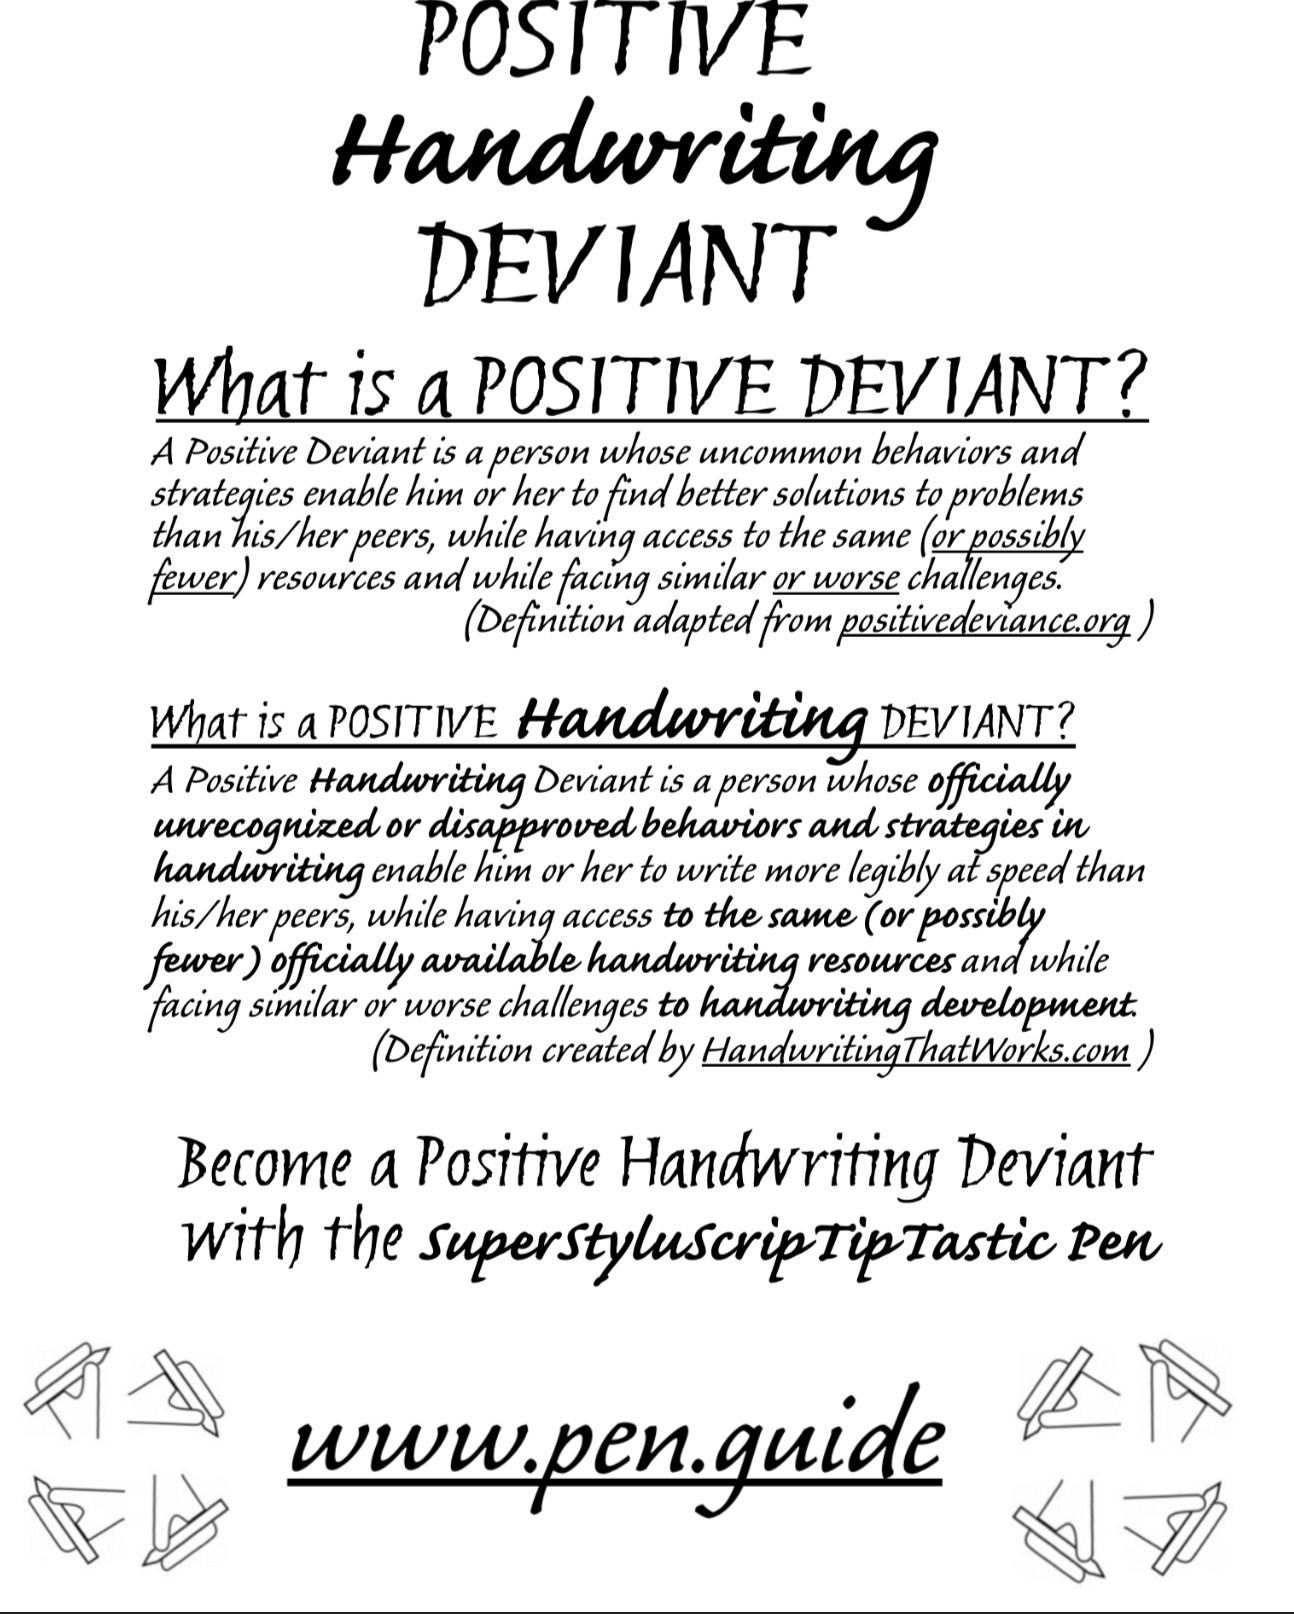 What is Positive Handwriting Deviant